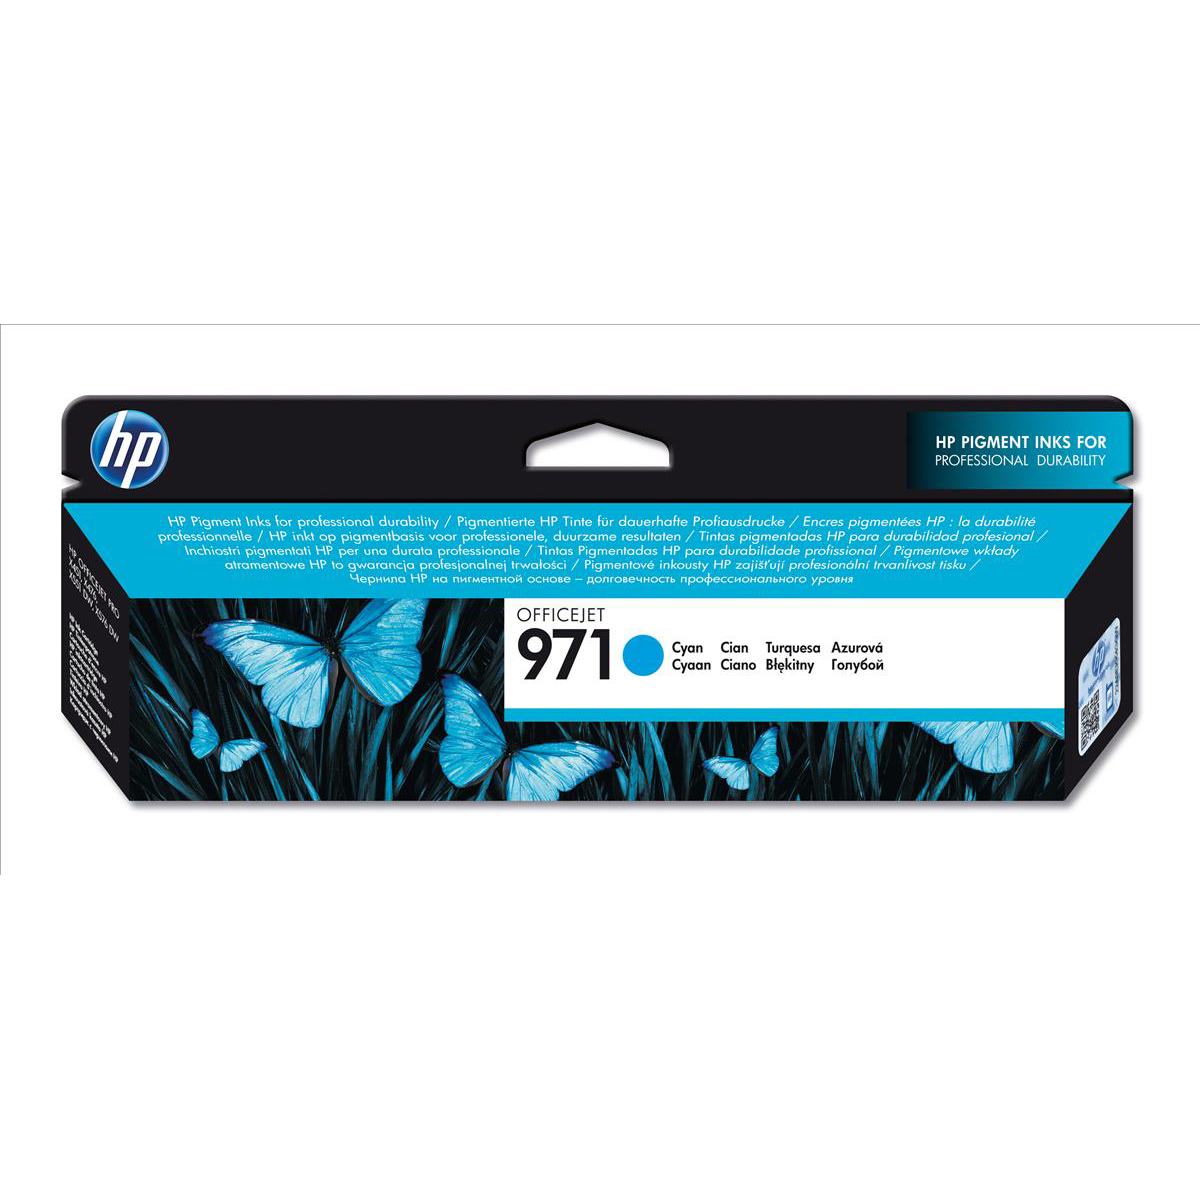 Hewlett Packard HP 971 Officejet Inkjet Cartridge Page Life 2500pp Cyan Ref CN622AE